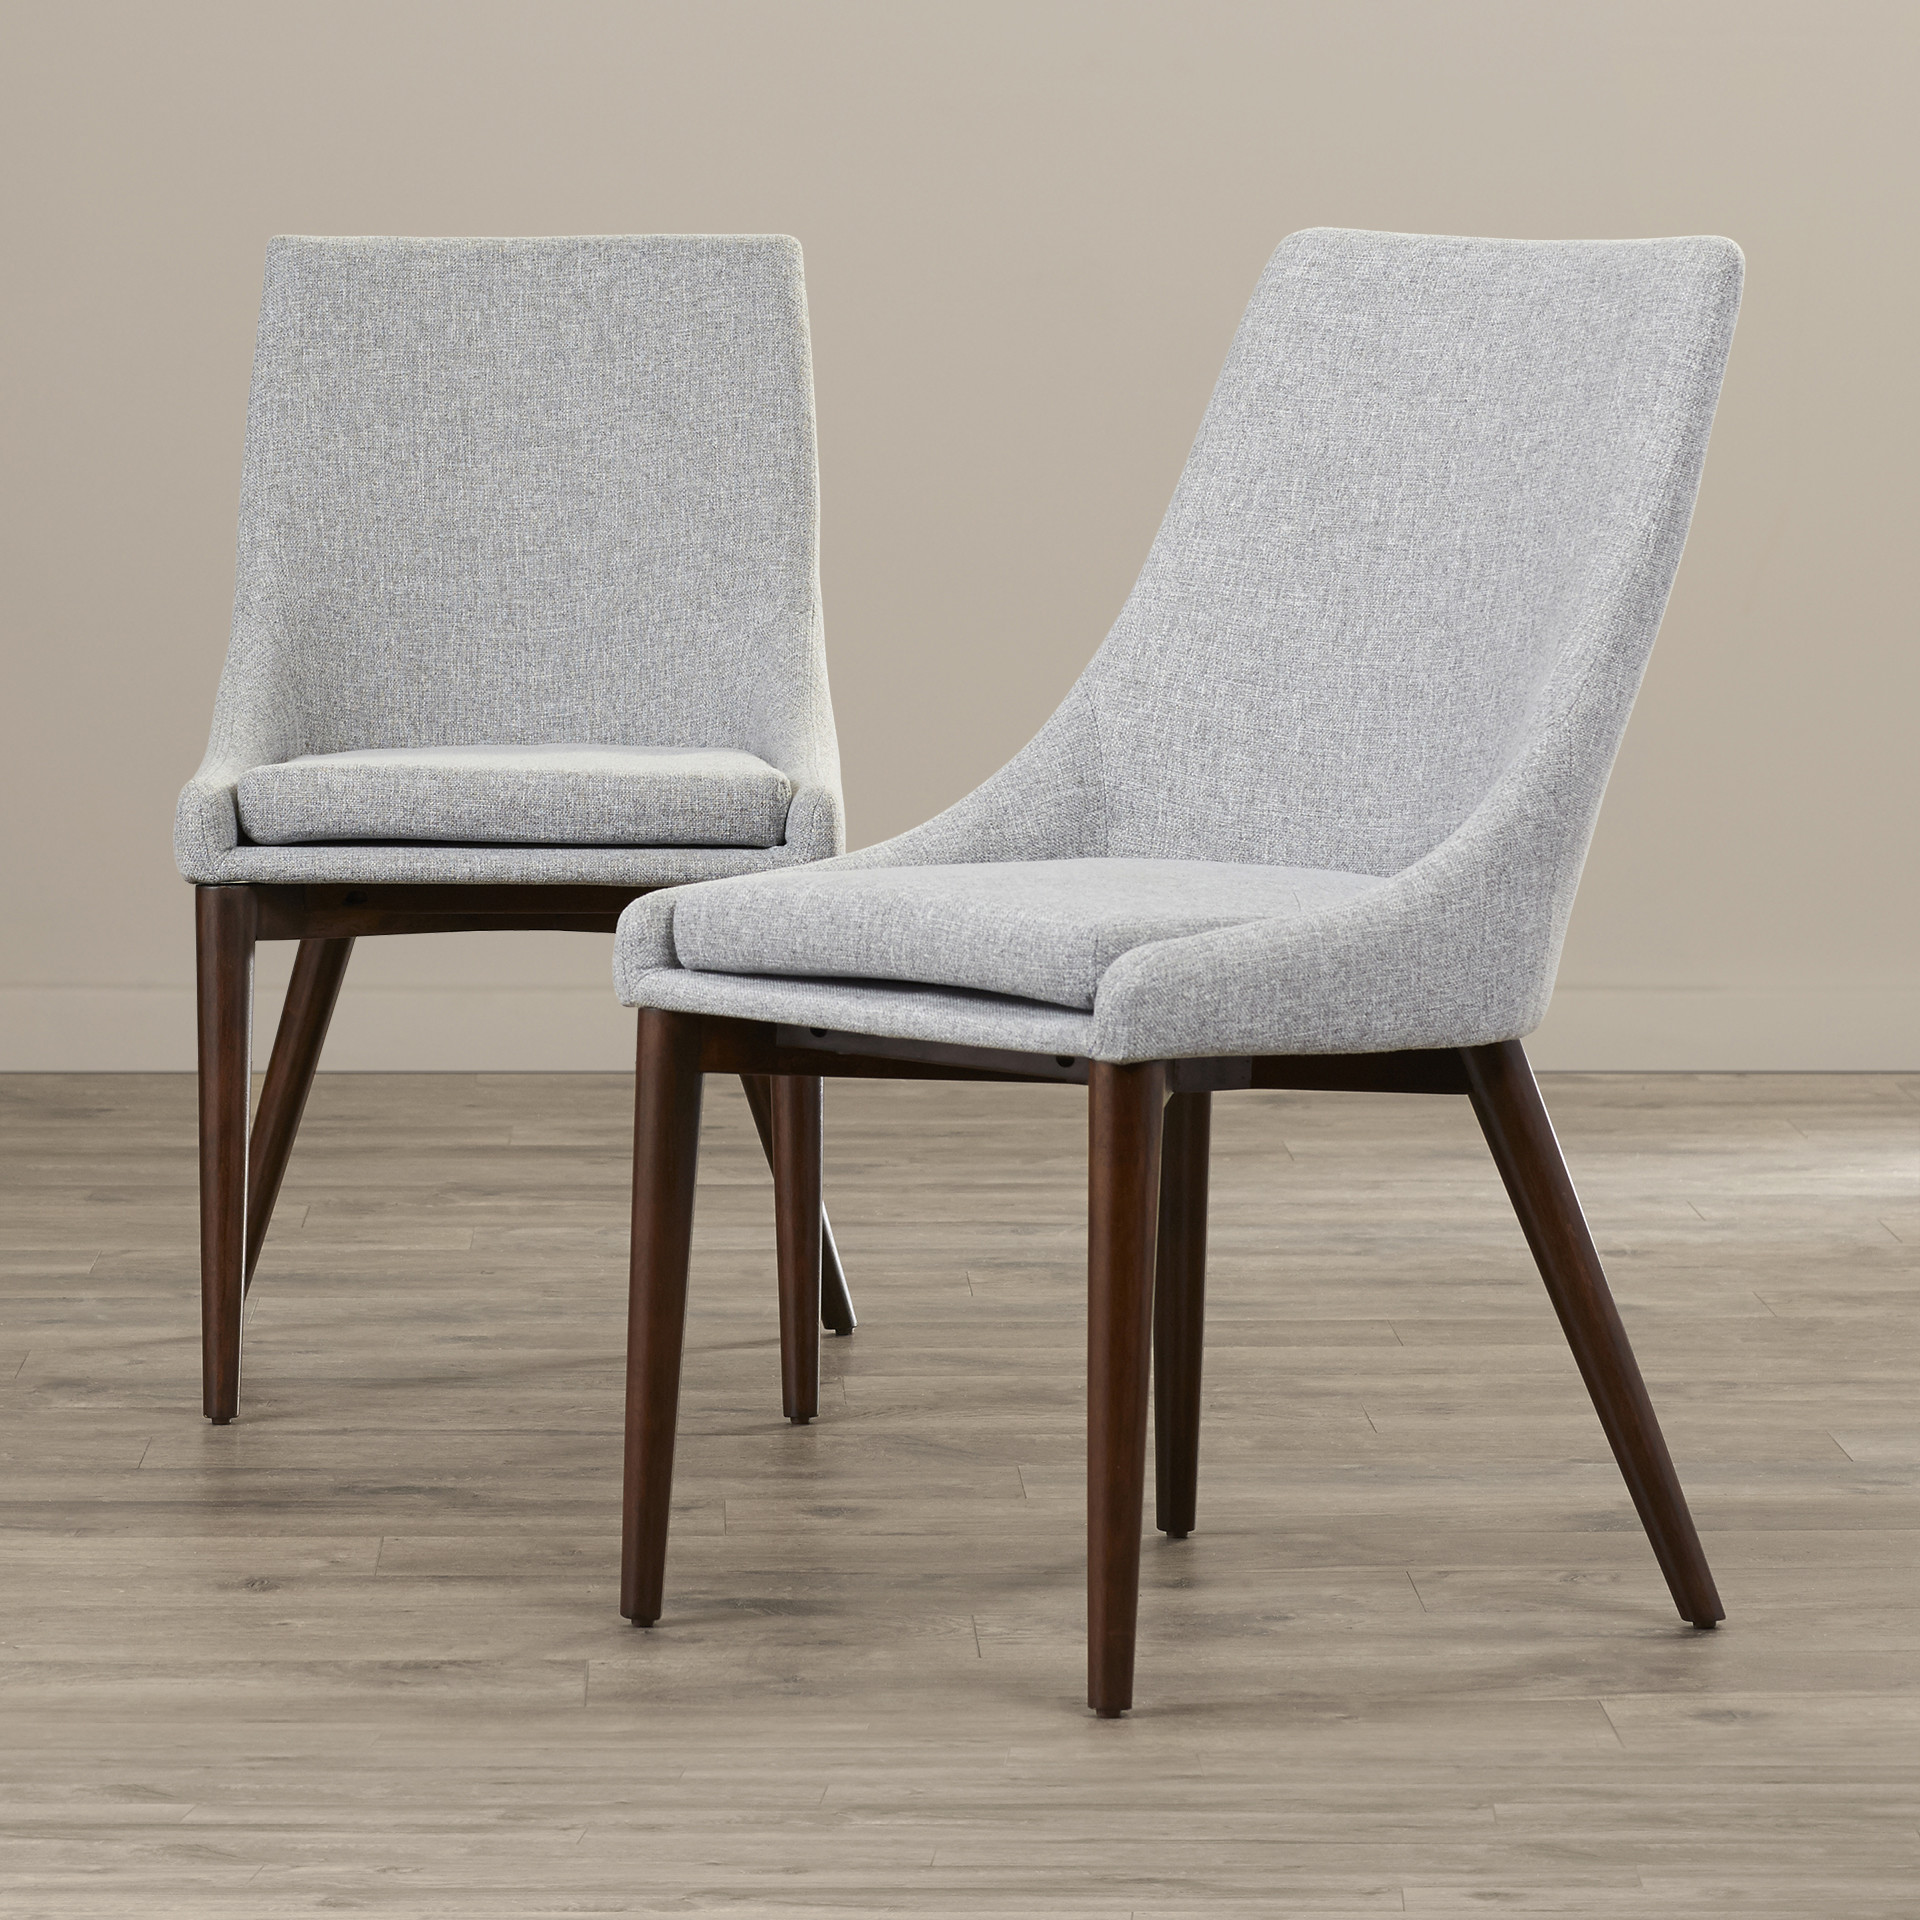 Remarkable Low Medium High Upholstered Dining Chairs For Any Budget Evergreenethics Interior Chair Design Evergreenethicsorg